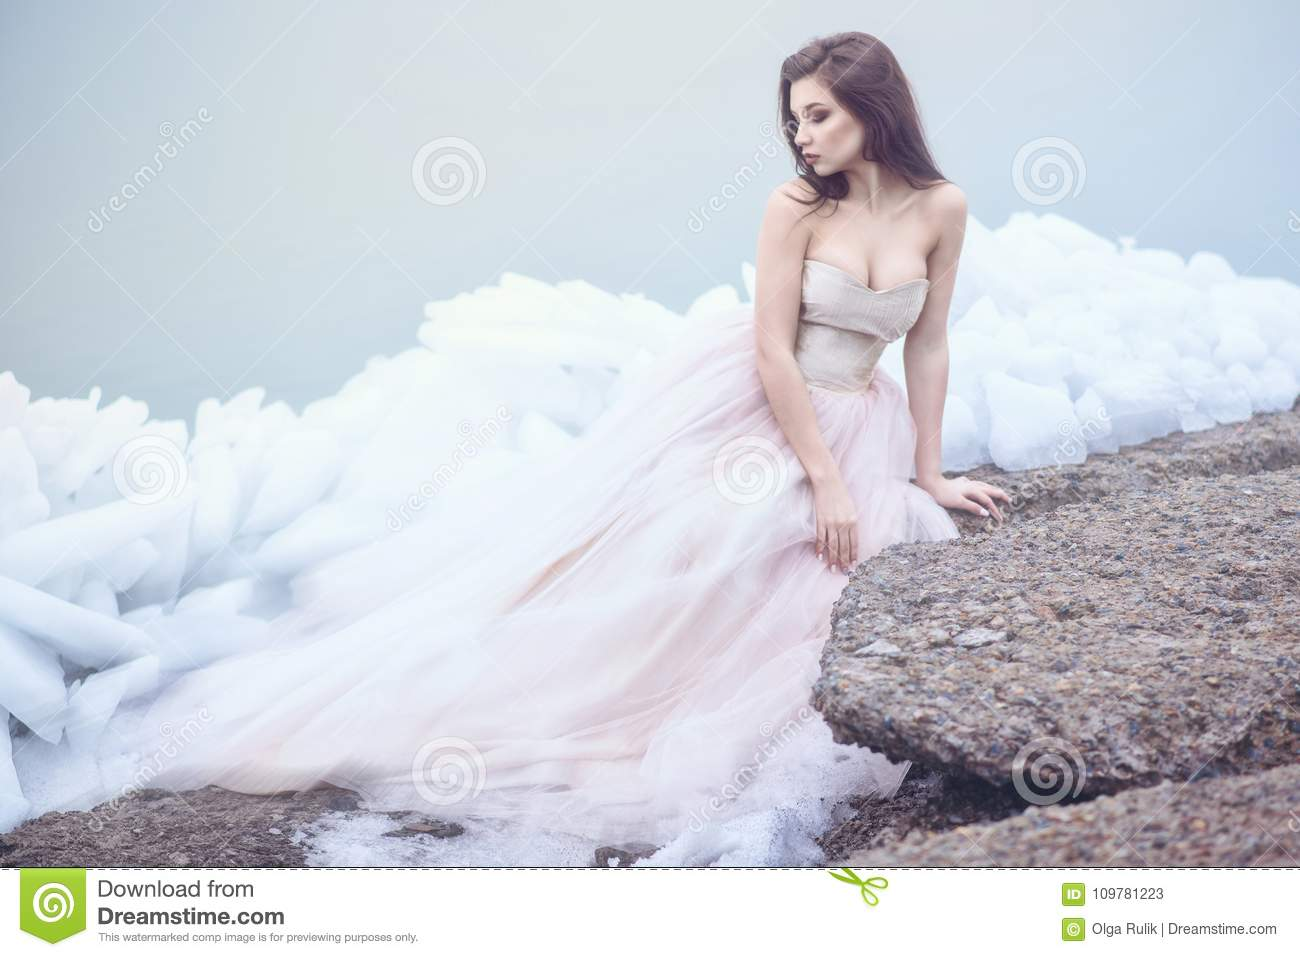 Beautiful model in luxurious strapless corset ball gown sitting on slabs of broken ice at the misty seaside